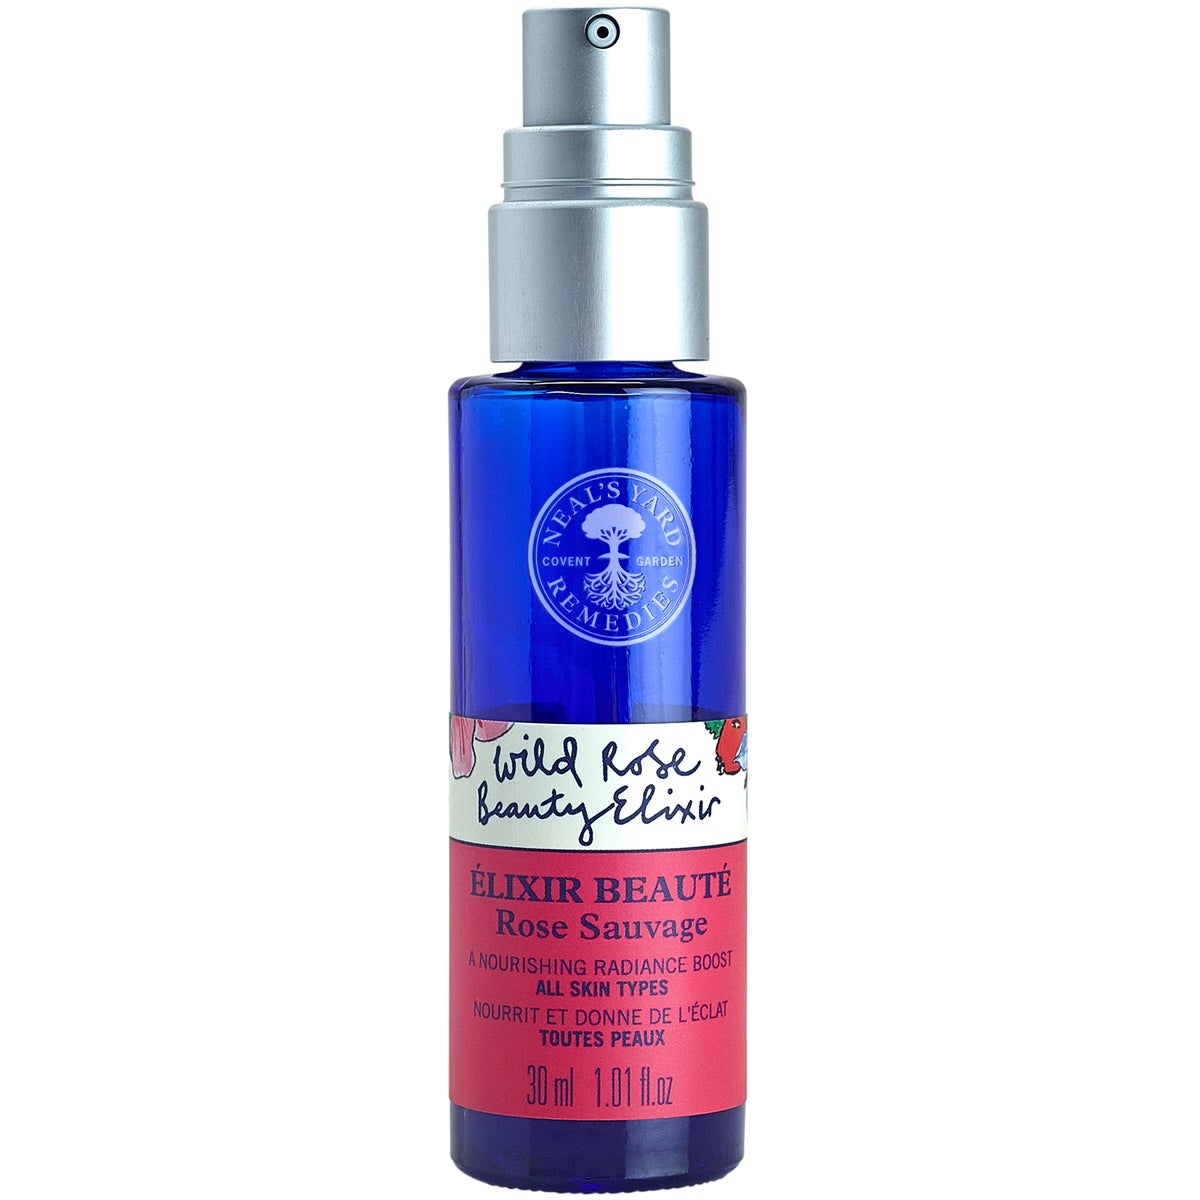 Neal's Yard Remedies Wild Rose Beauty Elixir